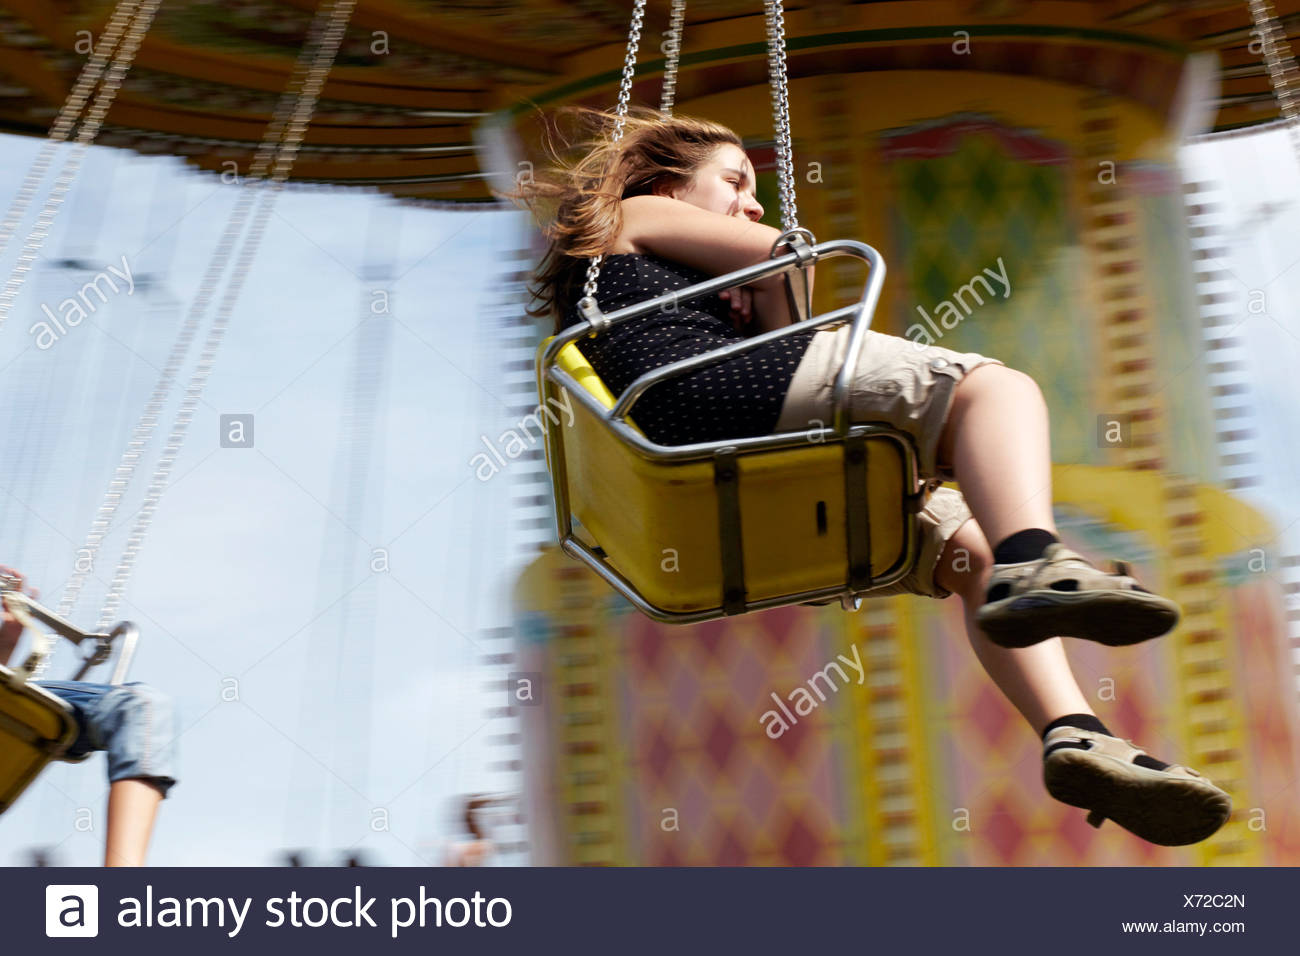 People Sitting in Amusement Park Ride, Bad Woerishofen, Bavaria, Germany, Europe - Stock Image